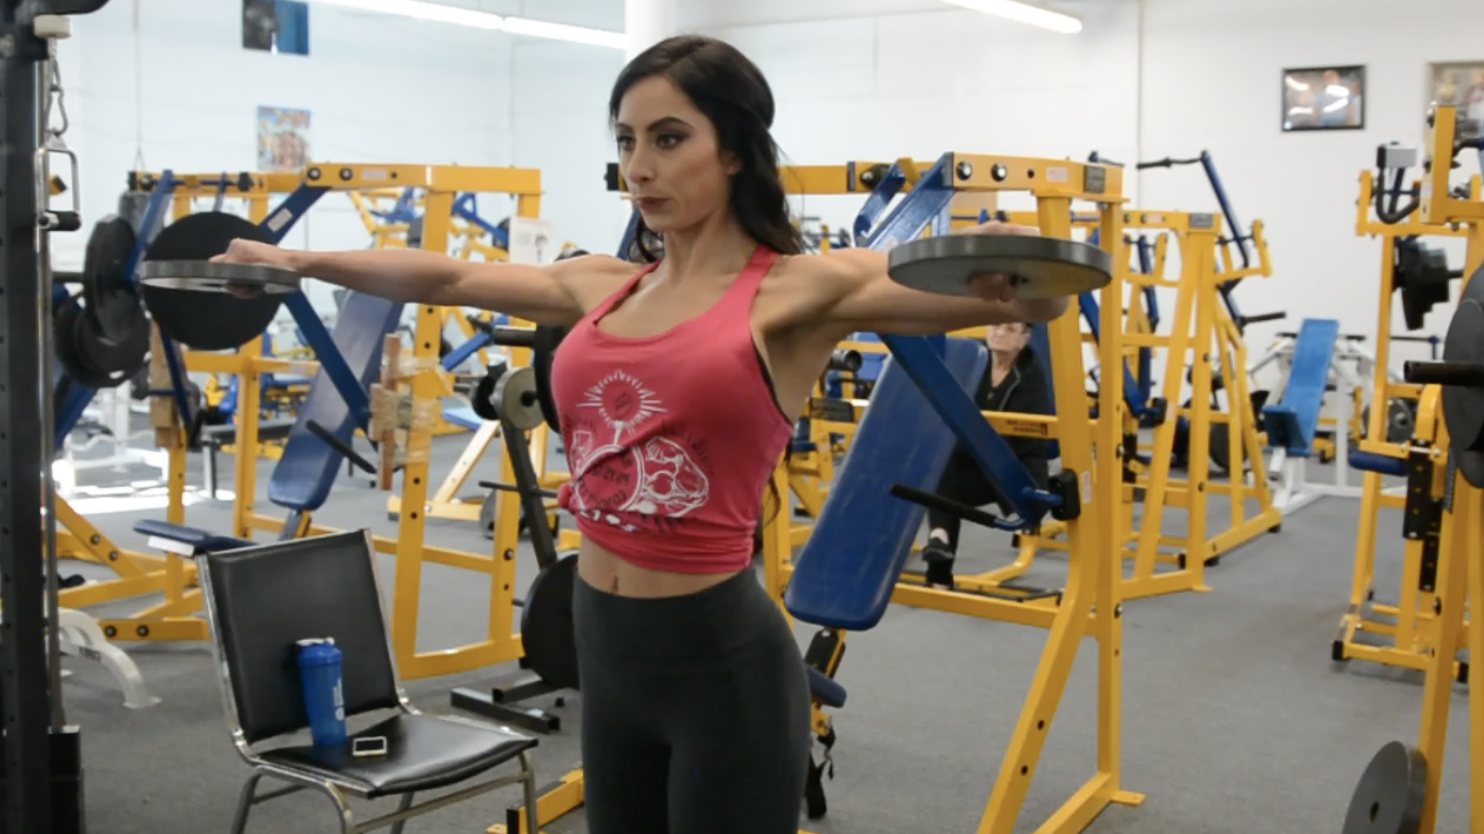 IFBB Bikini Pro Casey Samsel: Shoulder Workout/ Road To The Arnold Part 4. Filmed By J.M. Manion at the NPC Photo Gym